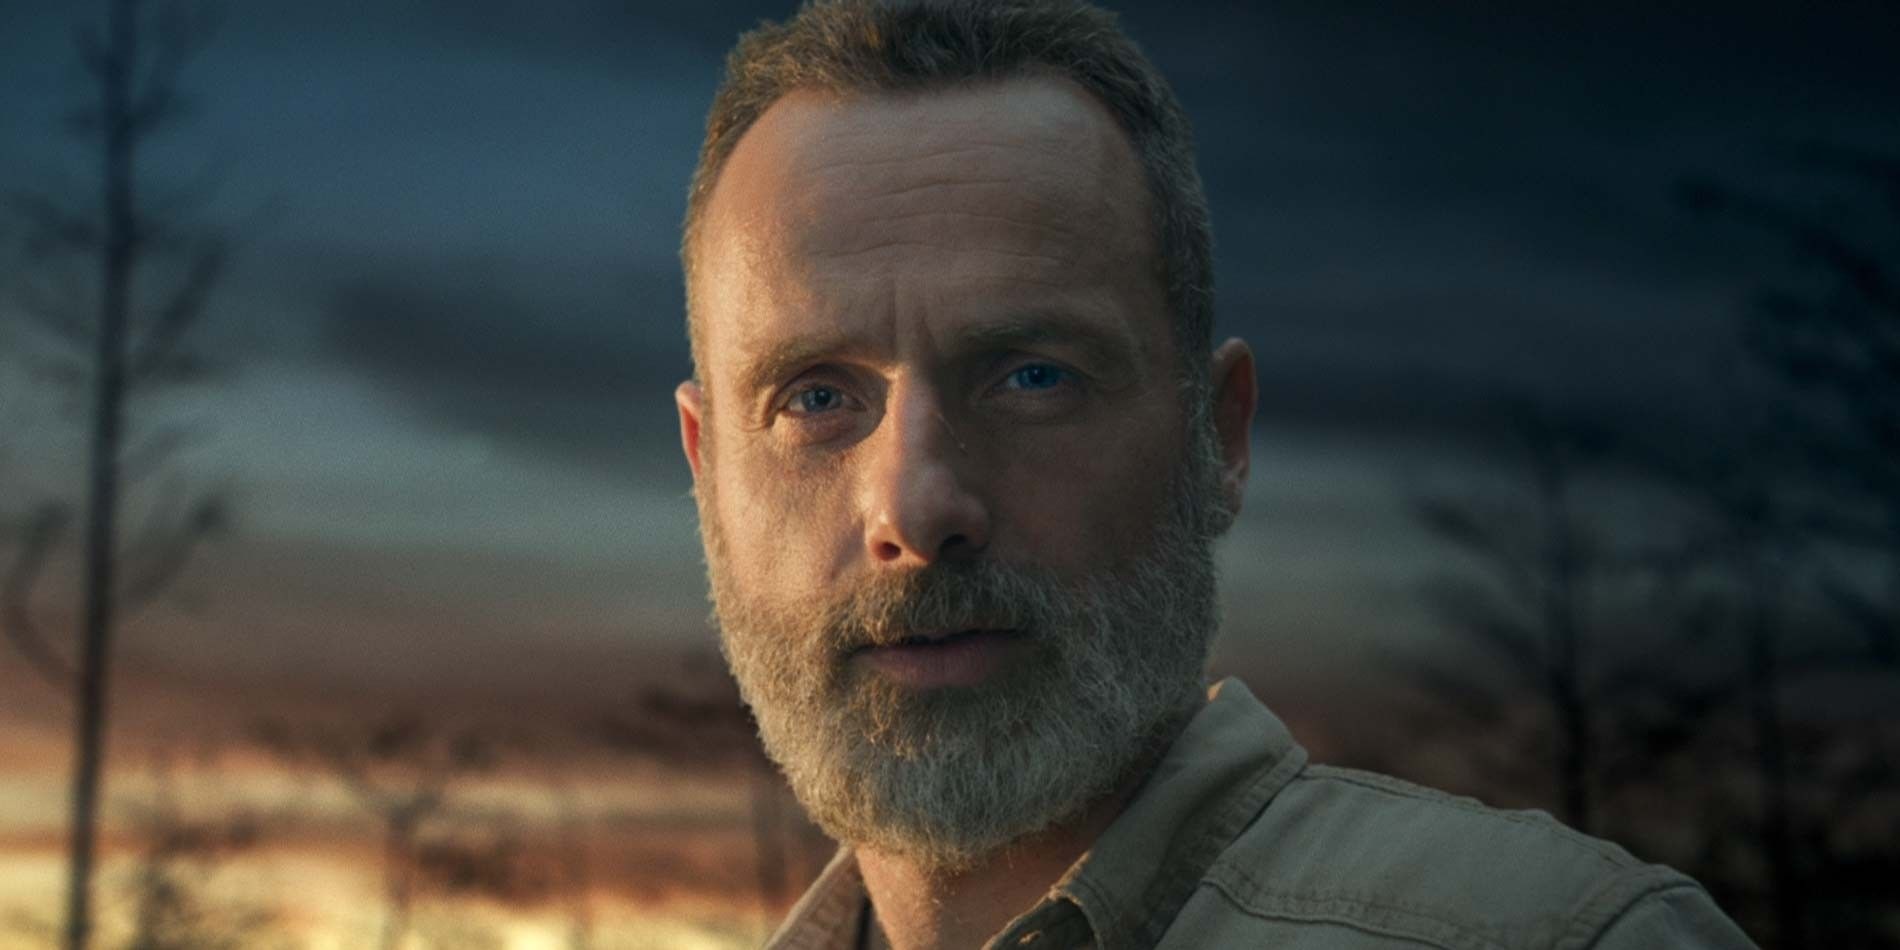 The Biggest Questions About Rick's Walking Dead Departure